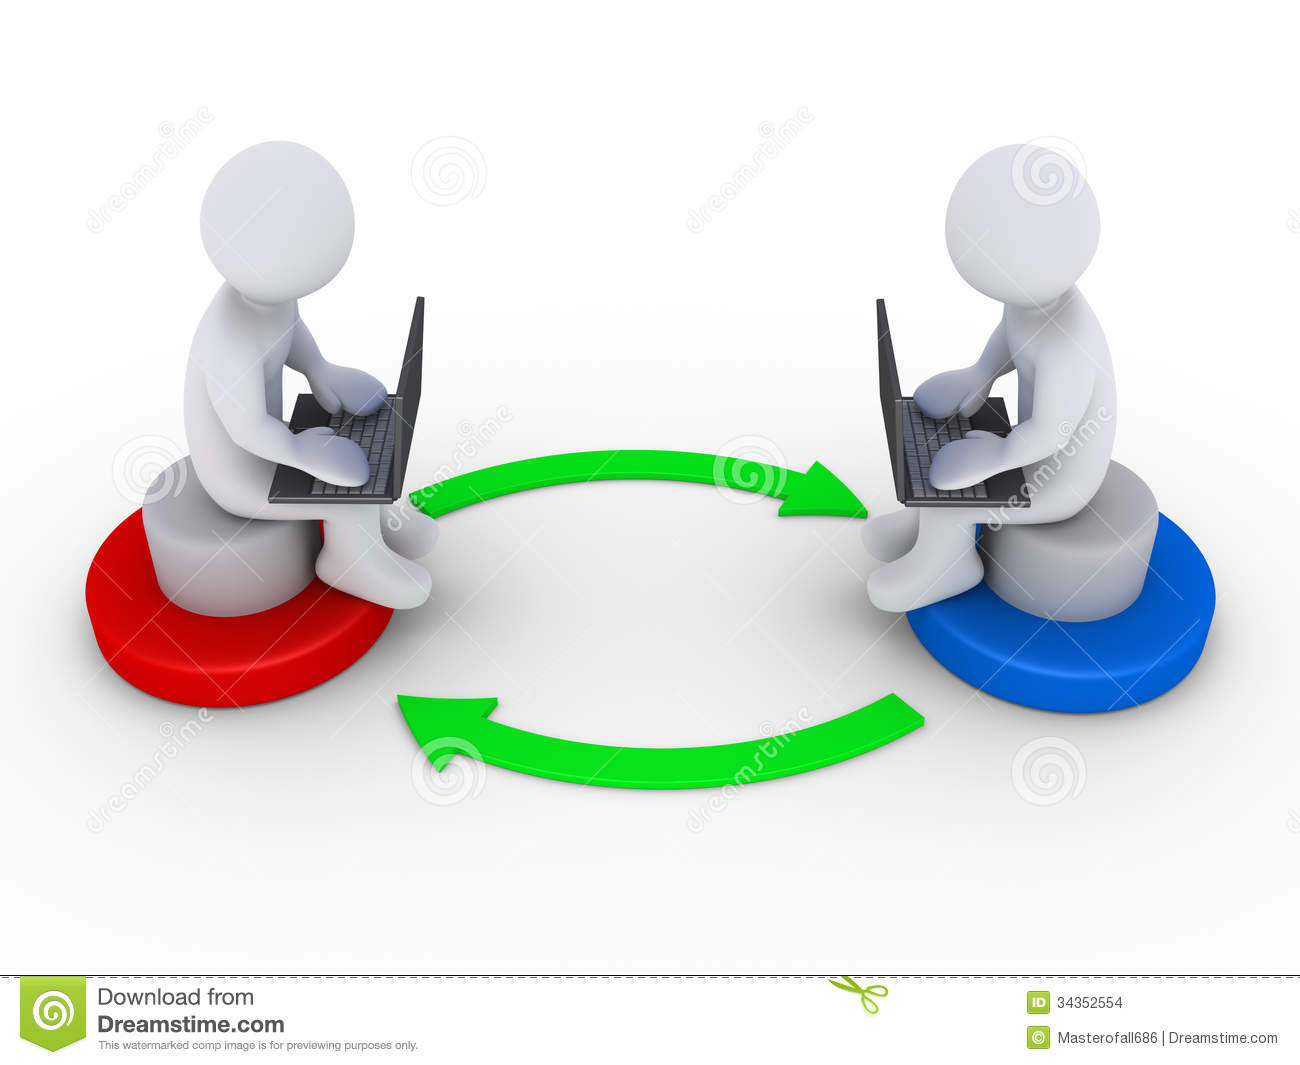 essay on computer connects people to people We the people essays: over 180,000 we the people essays, we the people term papers, we the people research paper, book reports 184 990 essays, term and research papers available for unlimited access.